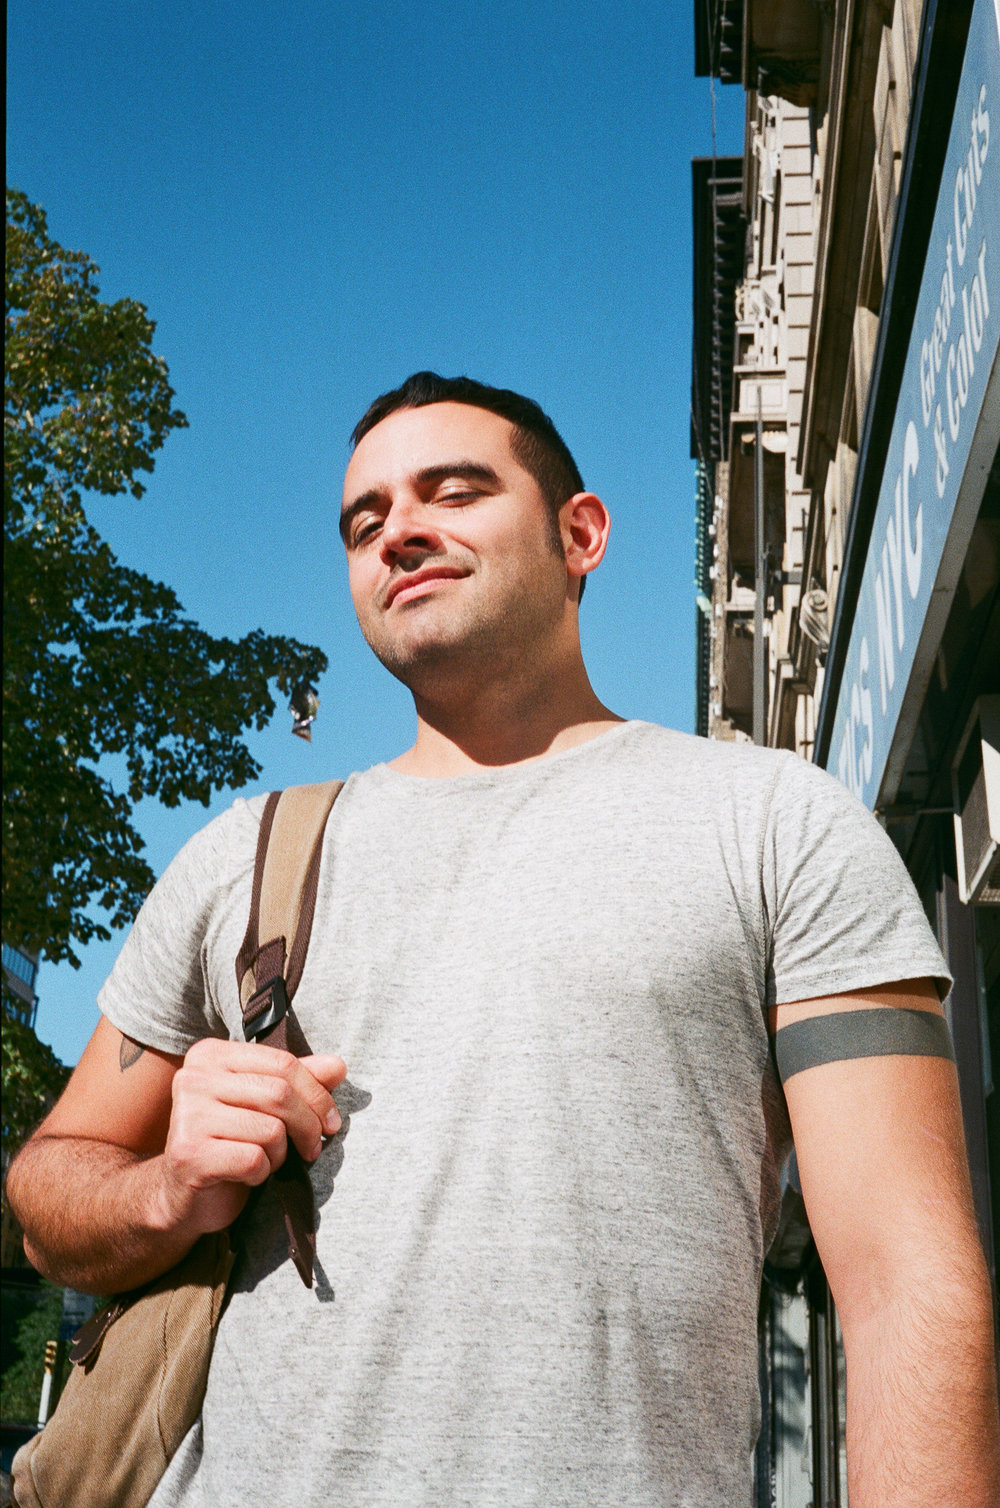 Fernando on Broadway in Harlem. Canonet QL17, Fuji Superia X-Tra 400.